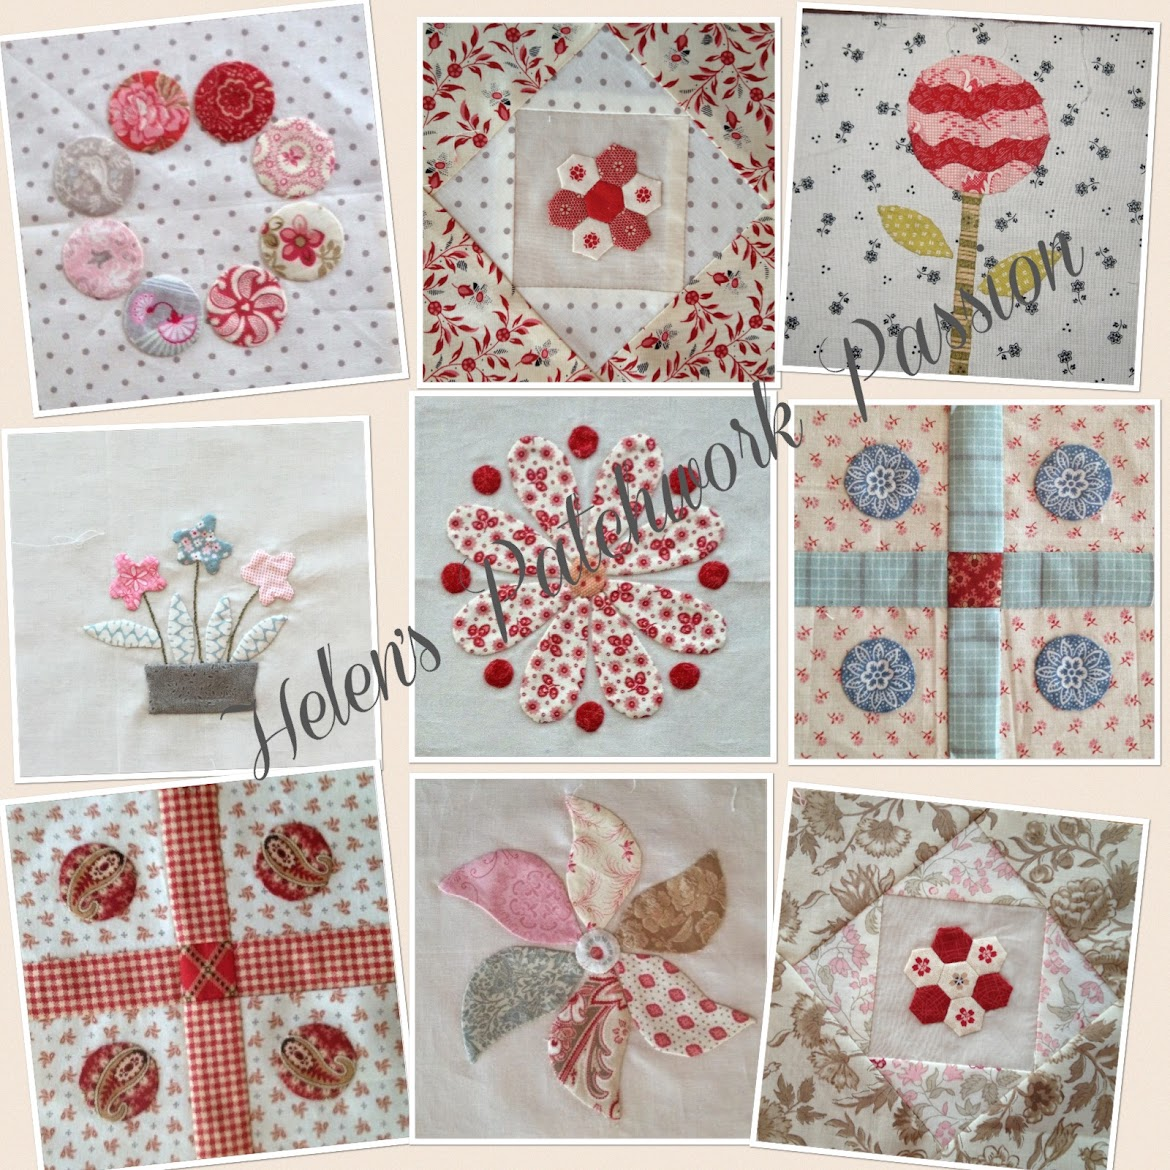 Helen's Patchwork Passion